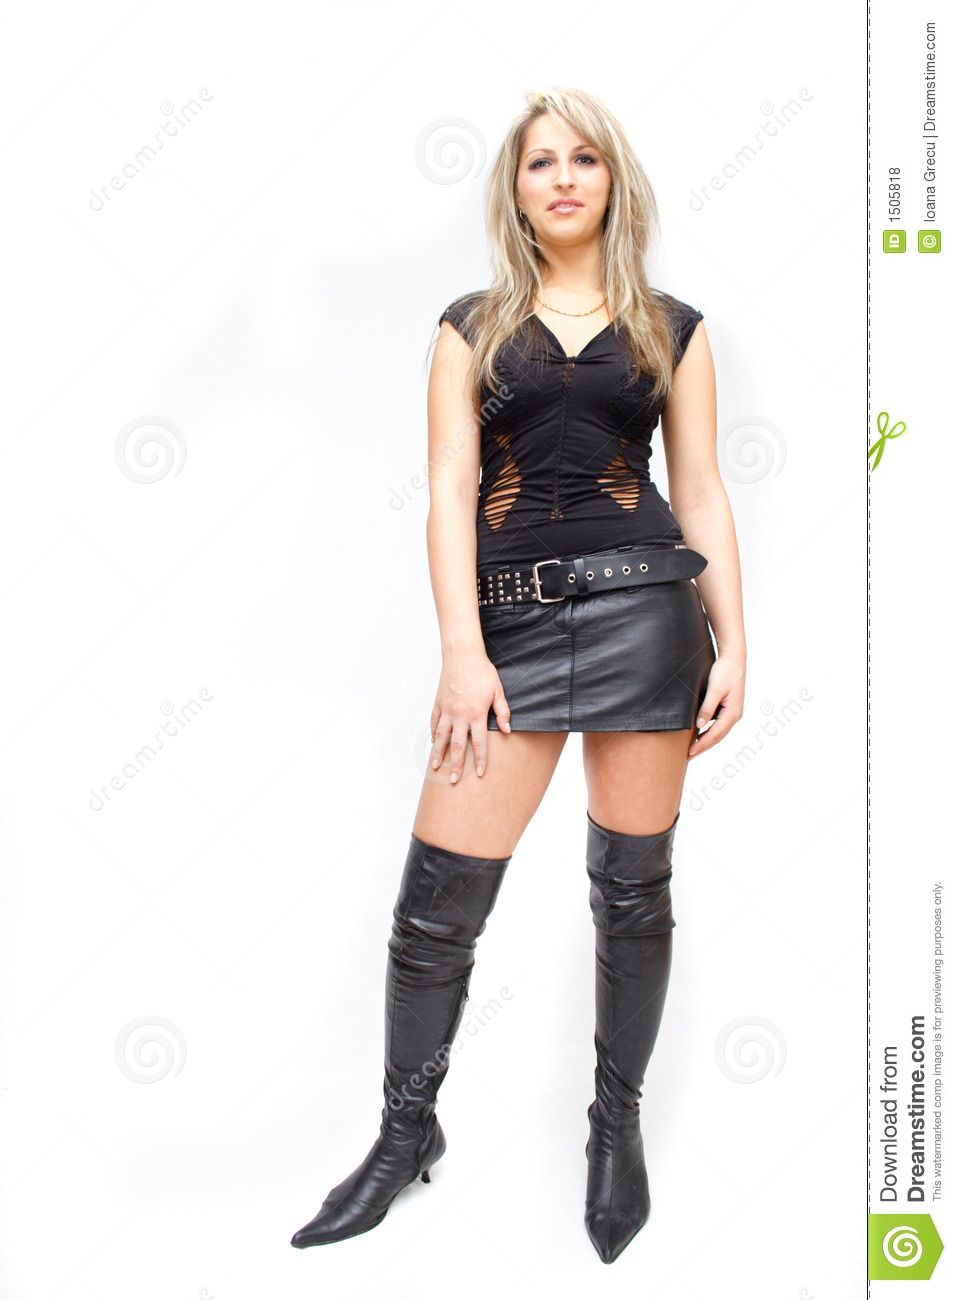 Lederhose Frau Lederhose Frau Tight Shiny Leather On Twitter